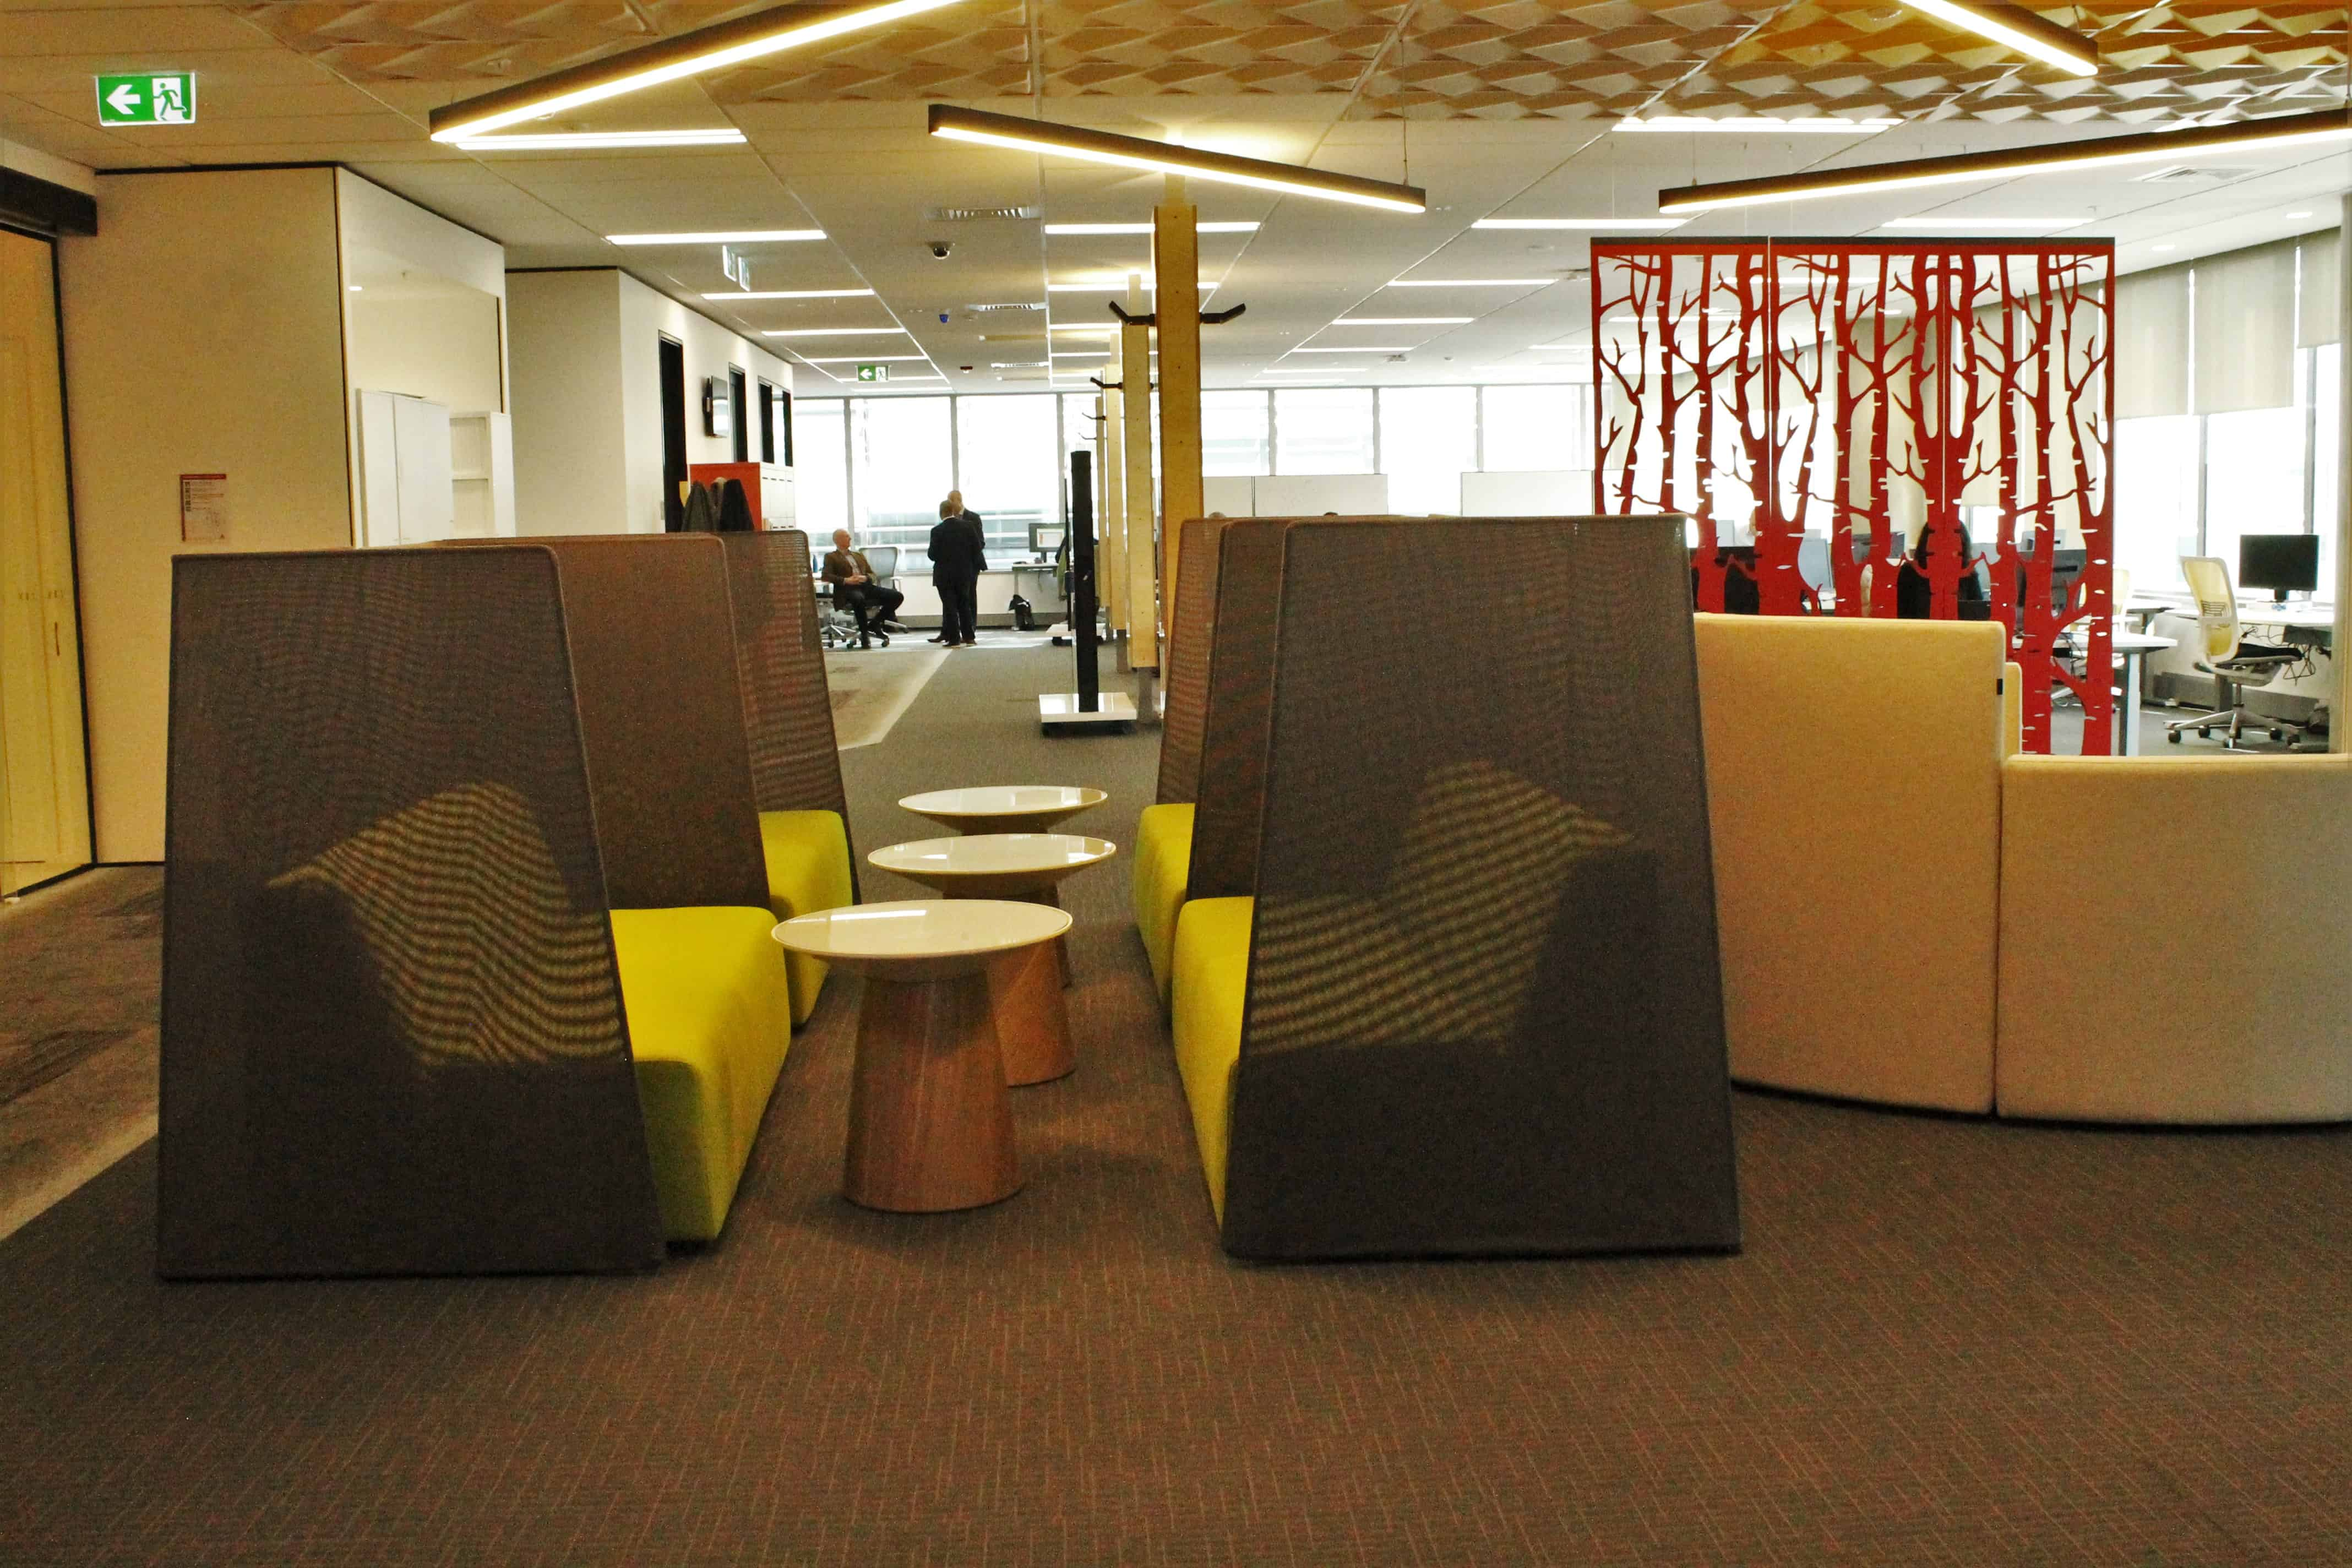 IBM office in Auckland workplace open meeting space with tables and chairs